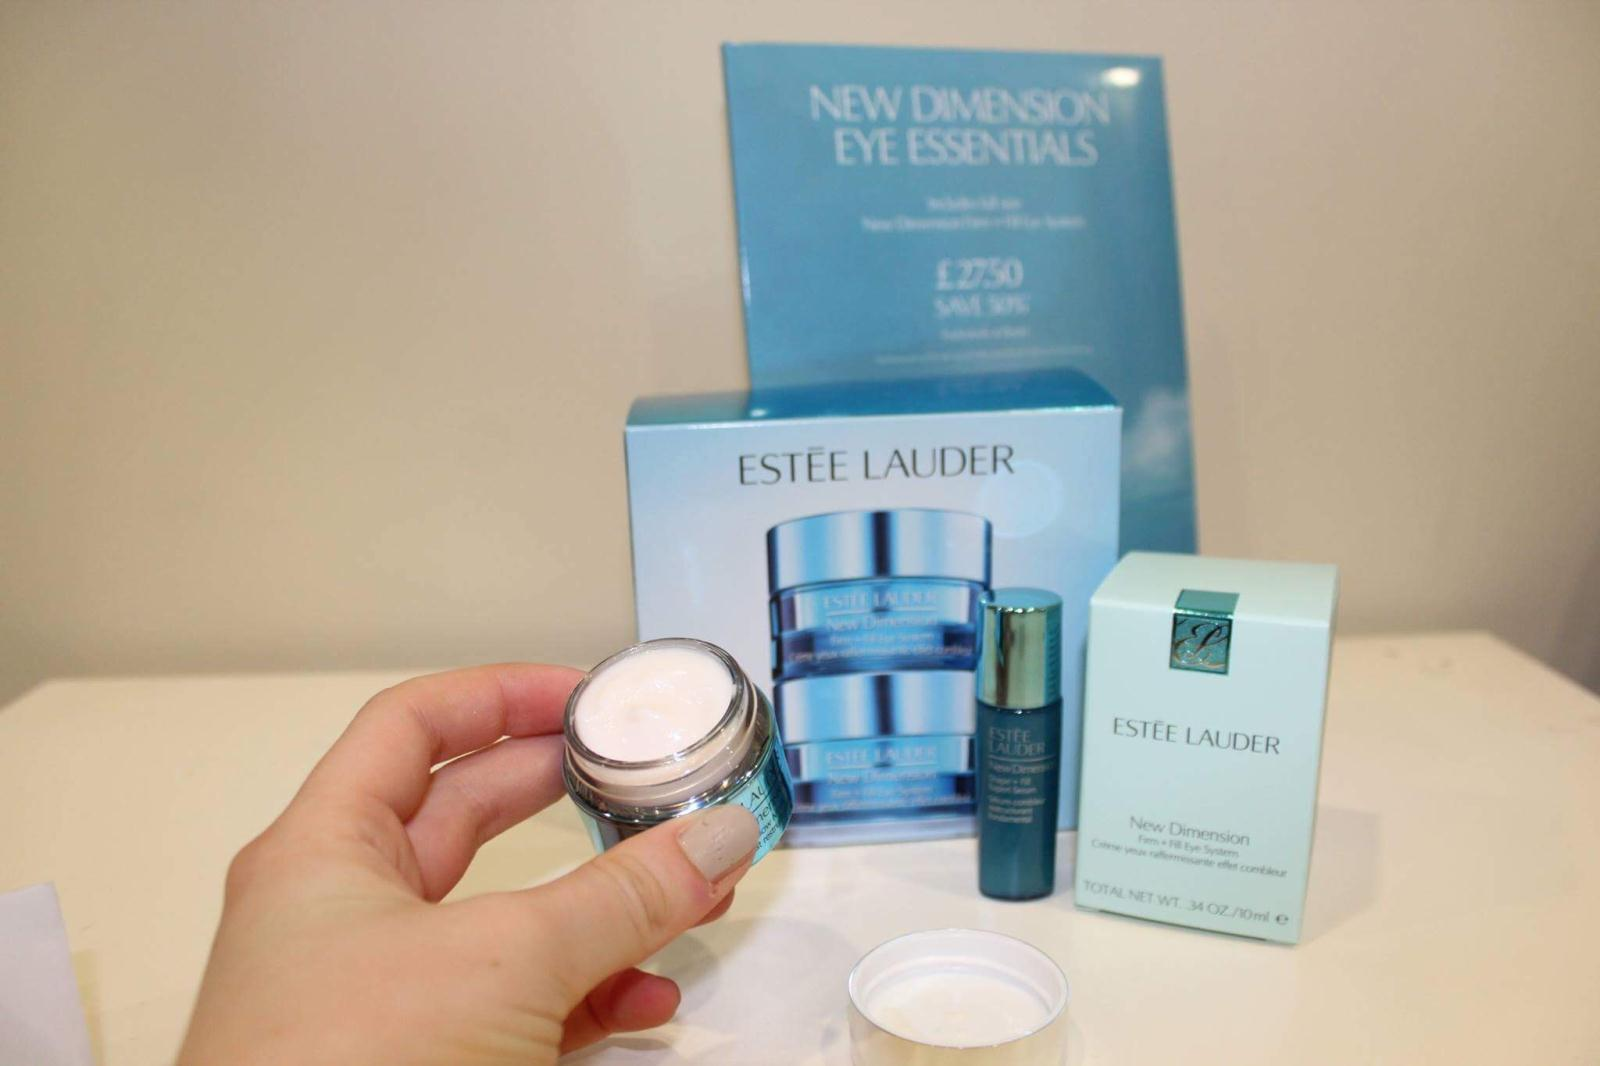 Estee Lauder skincare set at boots 1/2 price this Mothers Day